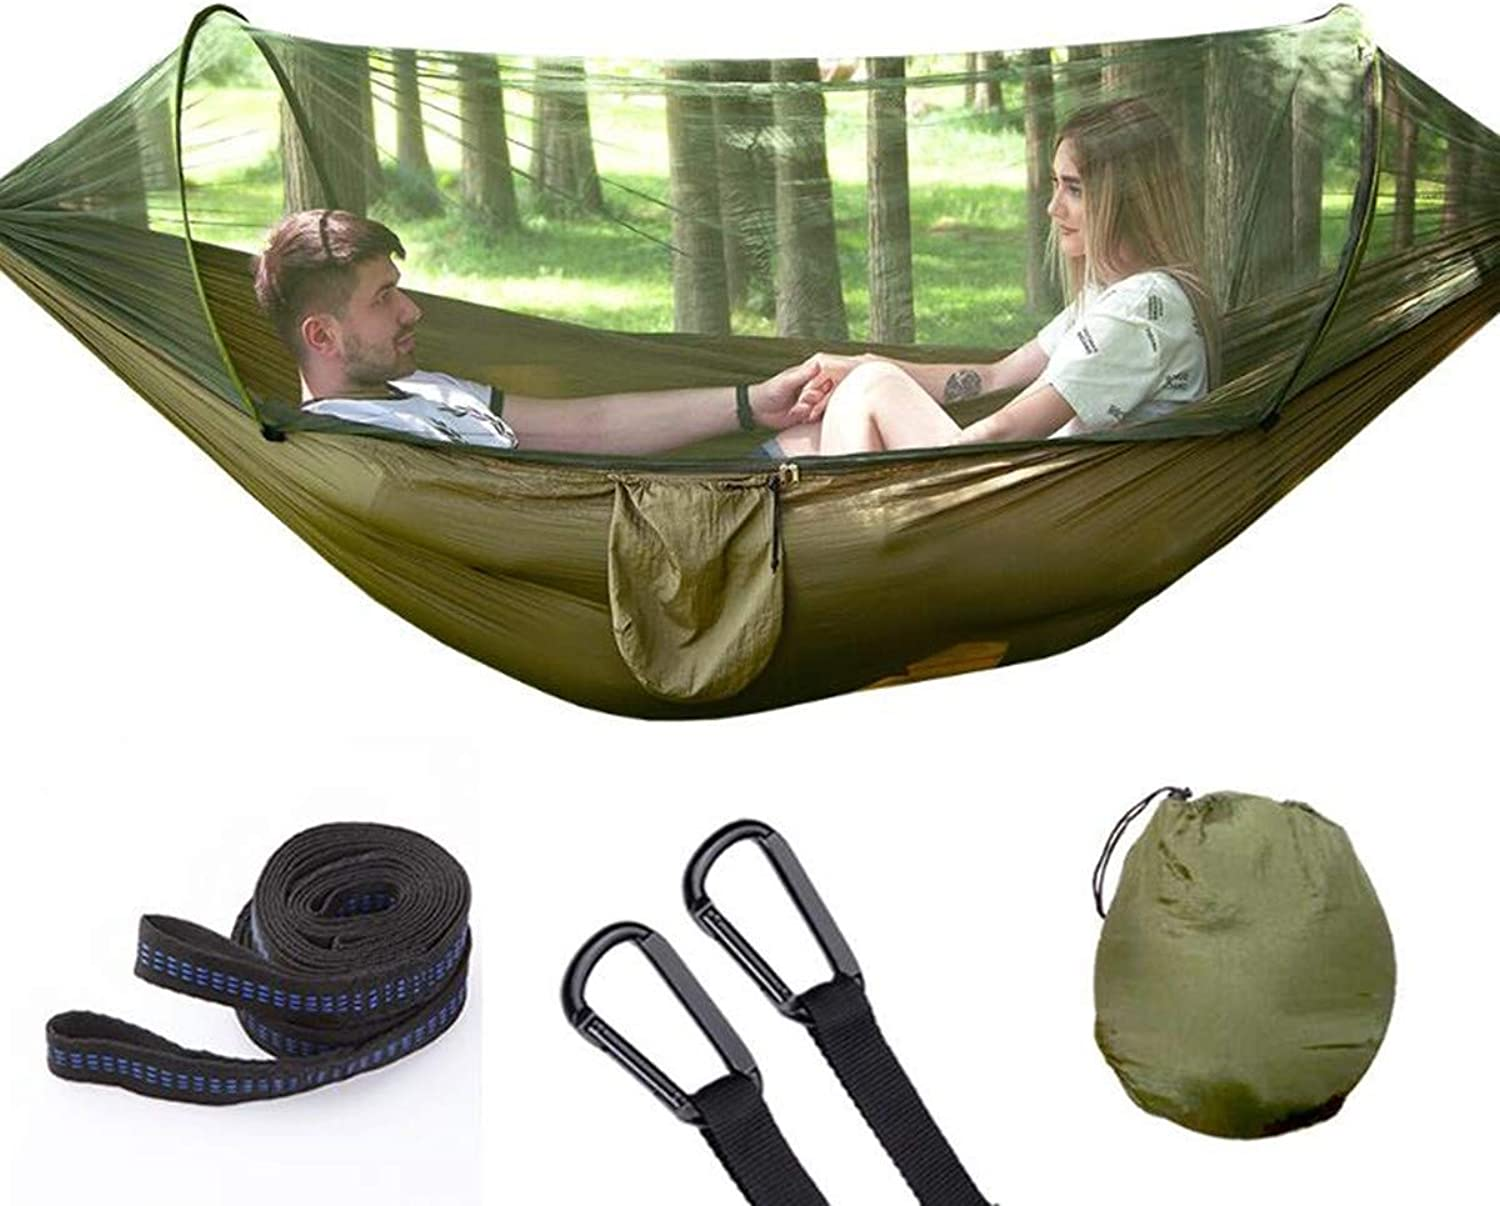 Portable Camping Hammock with Mosquito Bug Net Hammock Tree Straps & Carabiners   Lightweight Parachute Nylon Hammock for Camping Travel & More (Army Green 290x140cm)